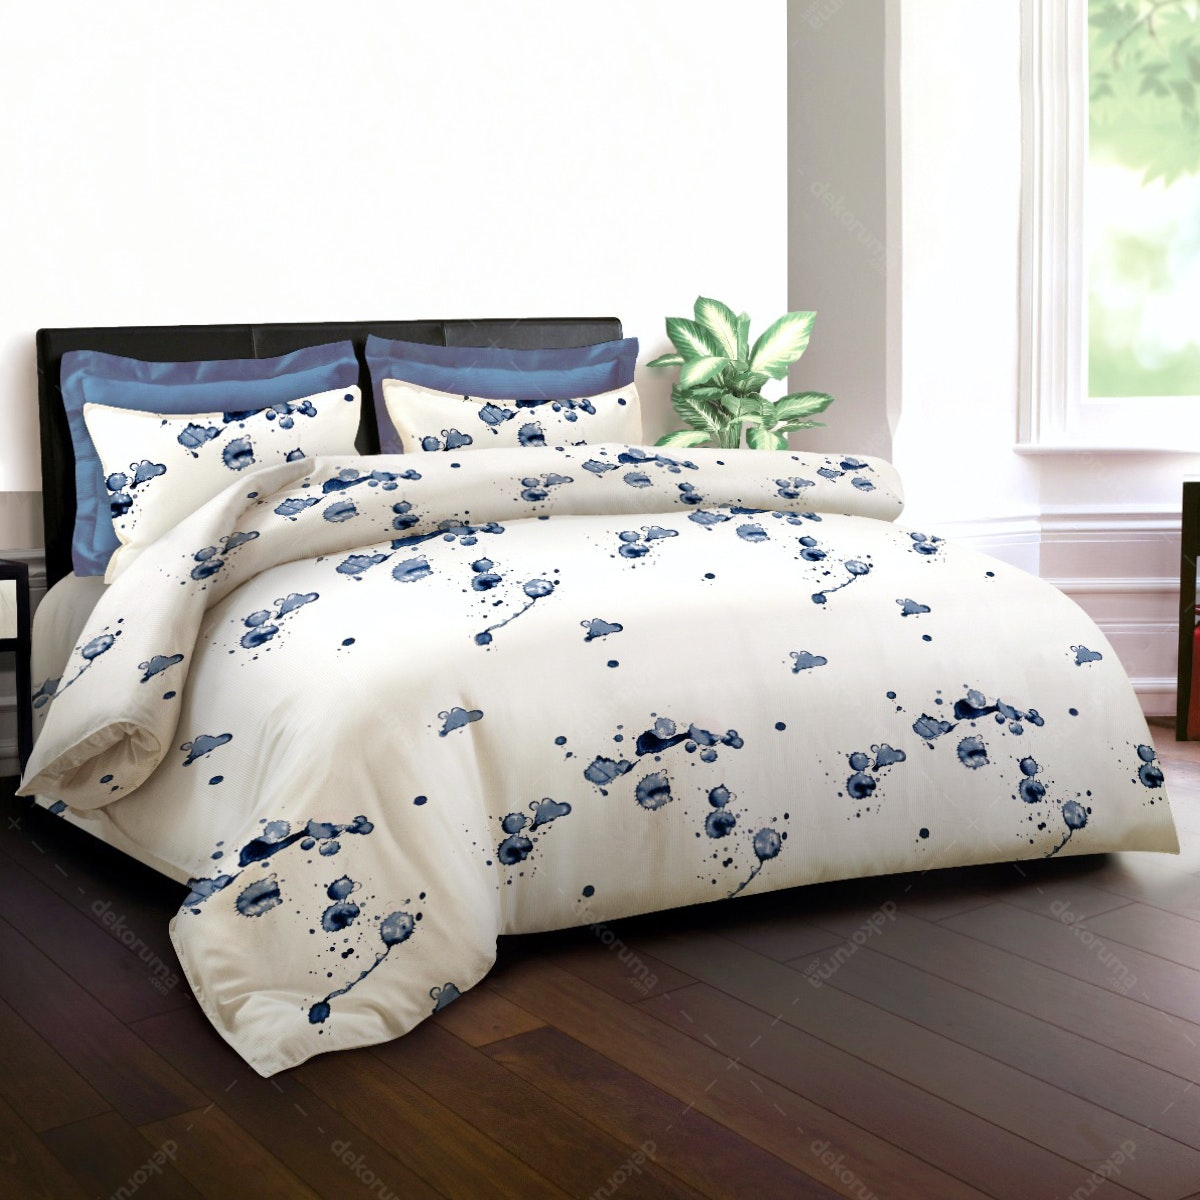 King Rabbit Bed Cover Aruba 140x230cm